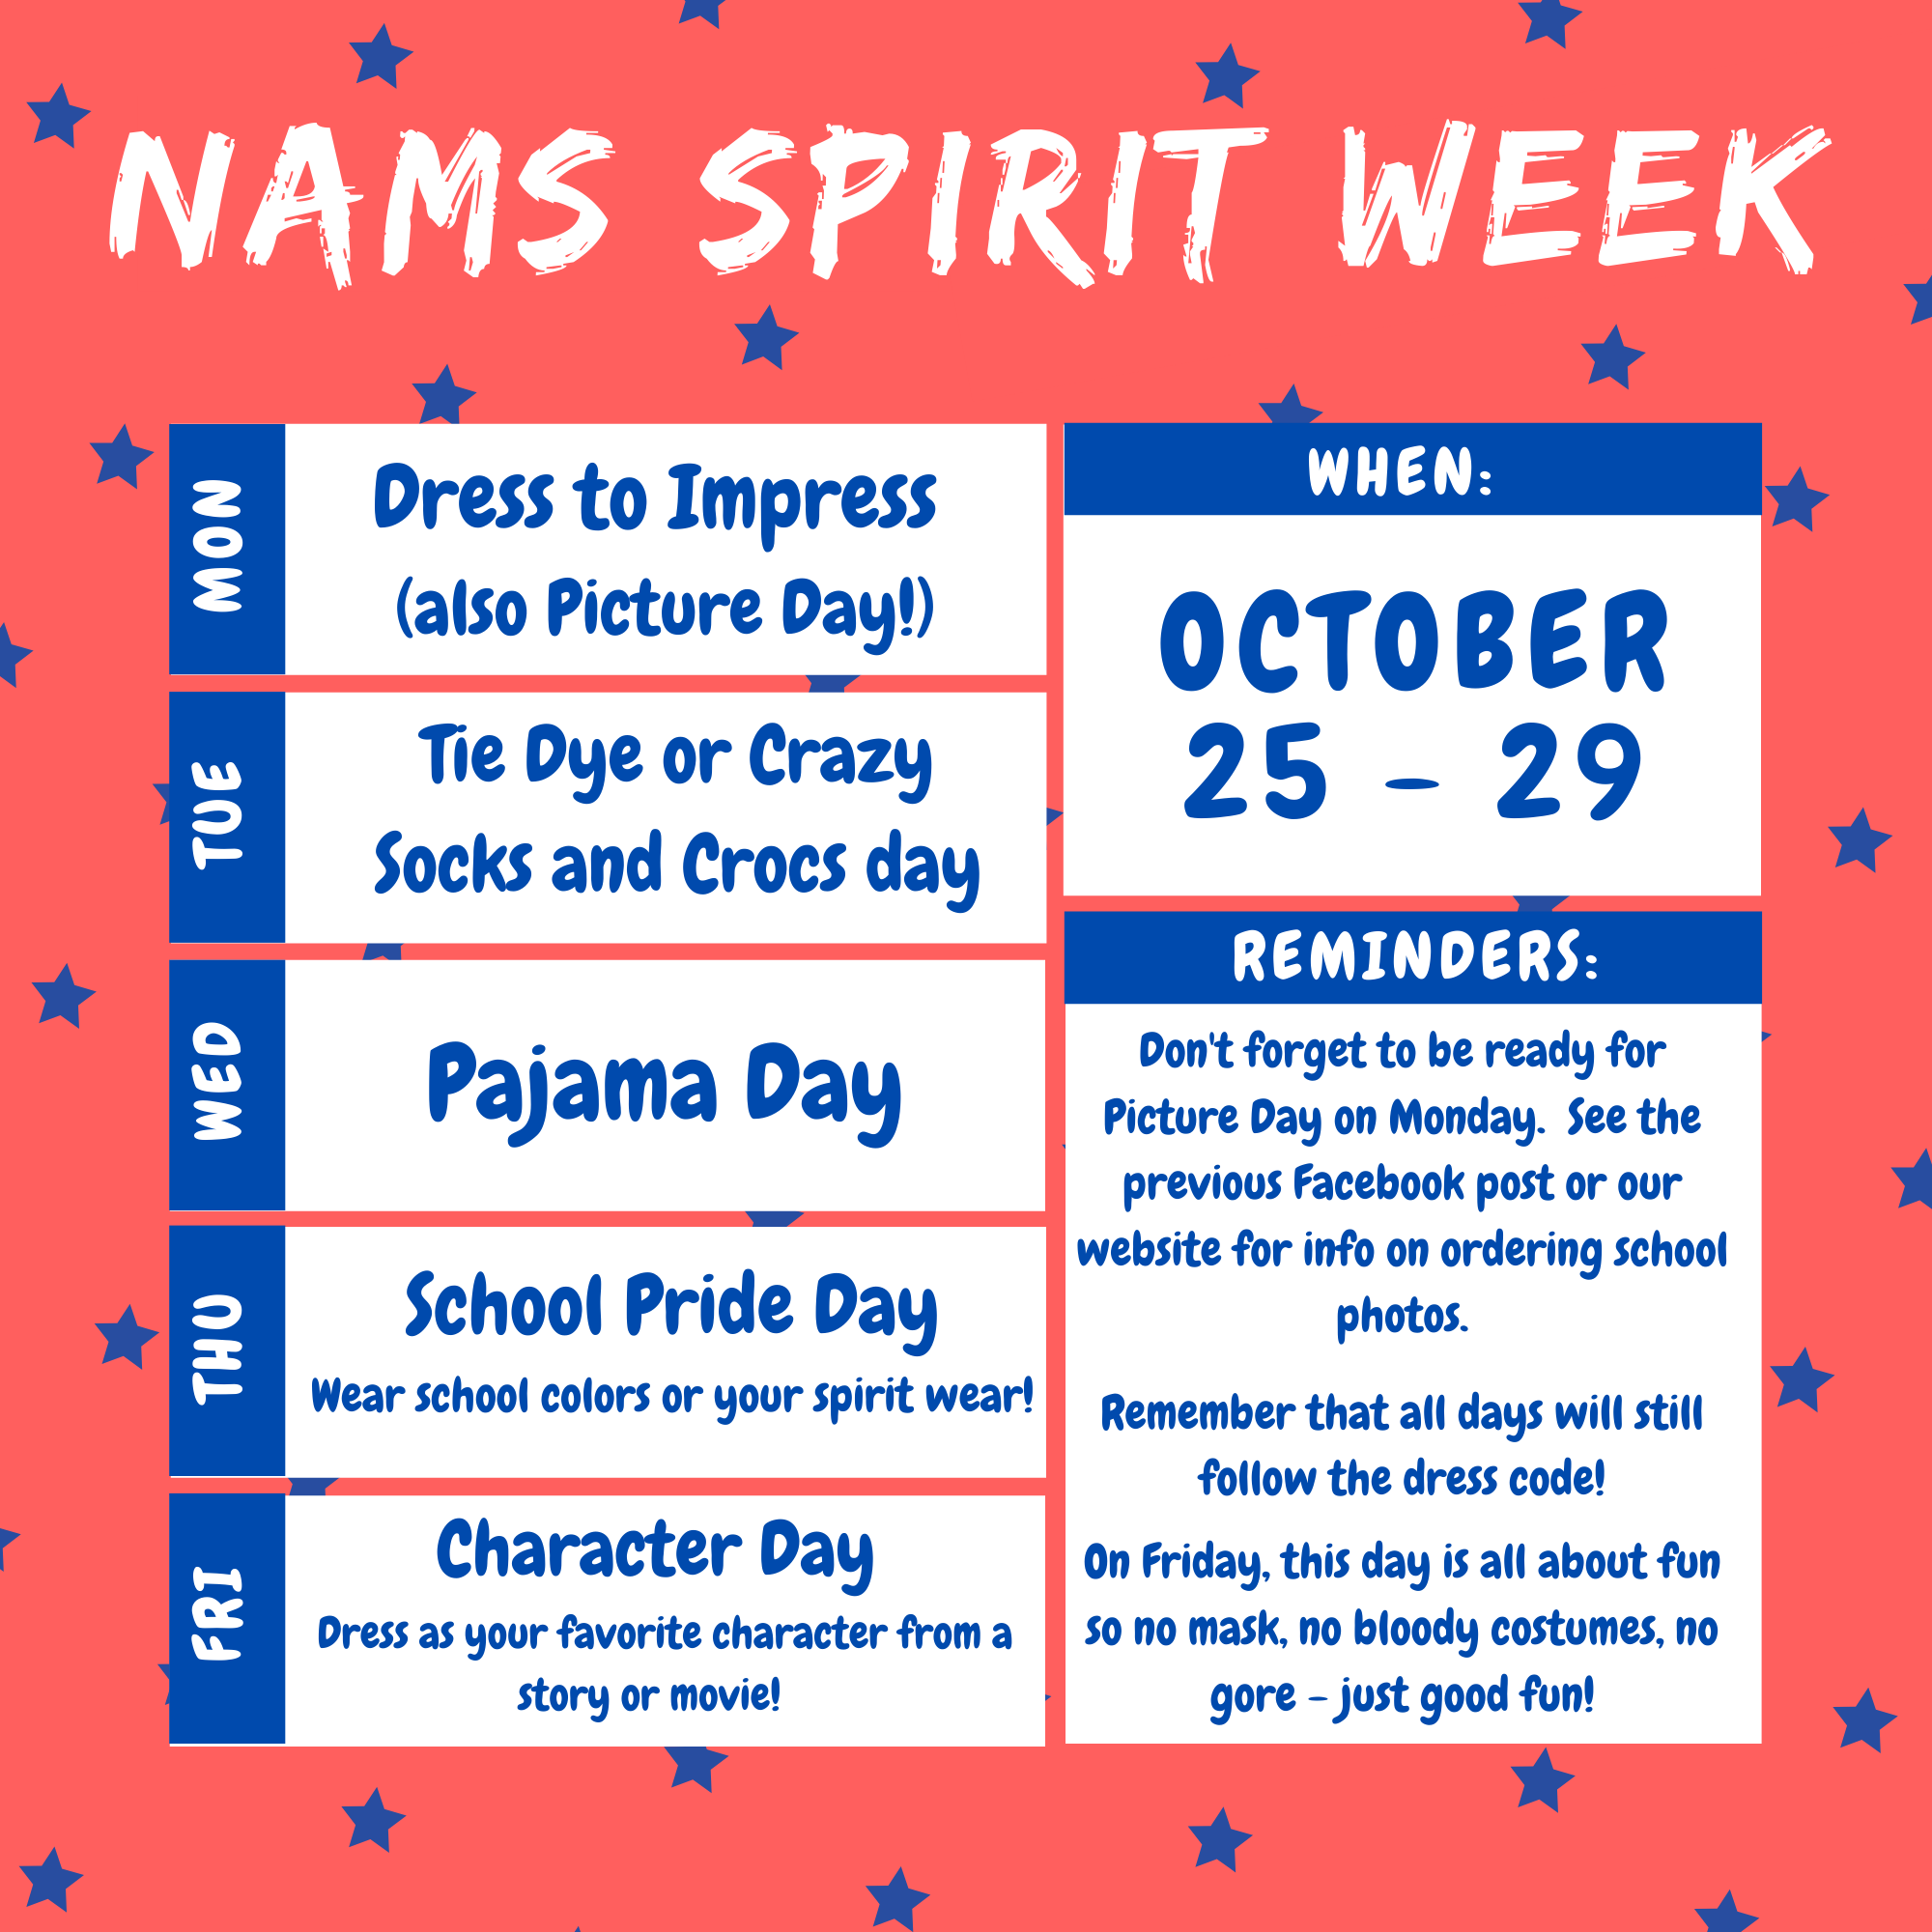 This is an infographic with pink backgorund and blue stars with the text from the article pasted in to promote spirit week.